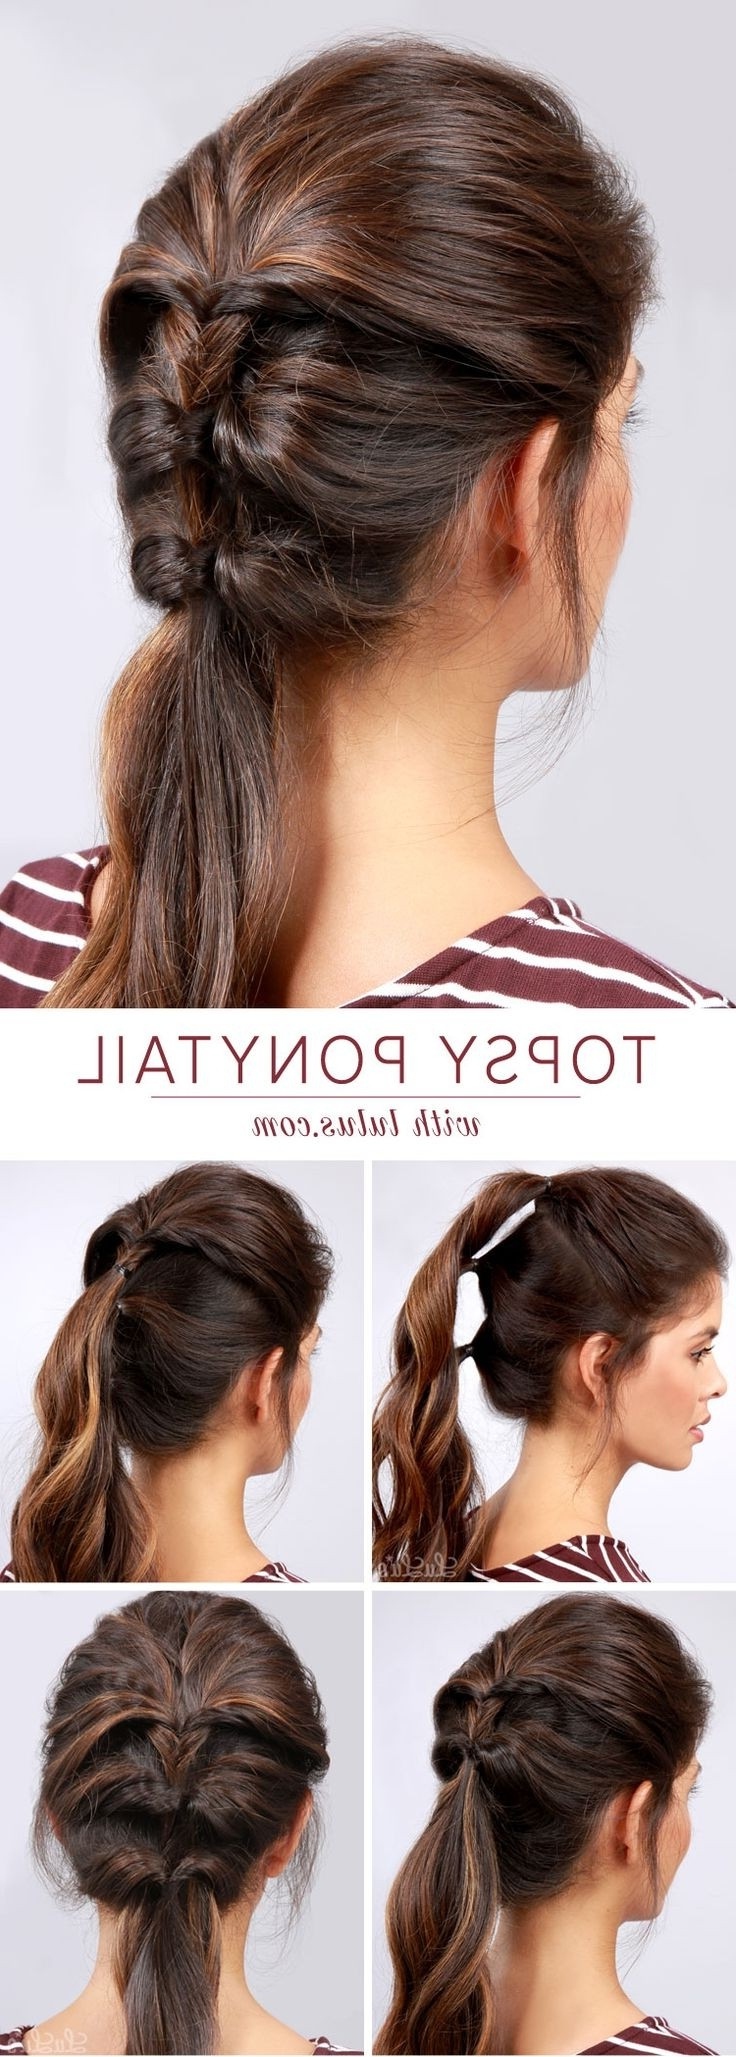 Best And Newest Chic Ponytail Hairstyles Ponytail Hairstyles Regarding 20 Ponytail Hairstyles: Discover Latest Ponytail Ideas Now (View 13 of 20)